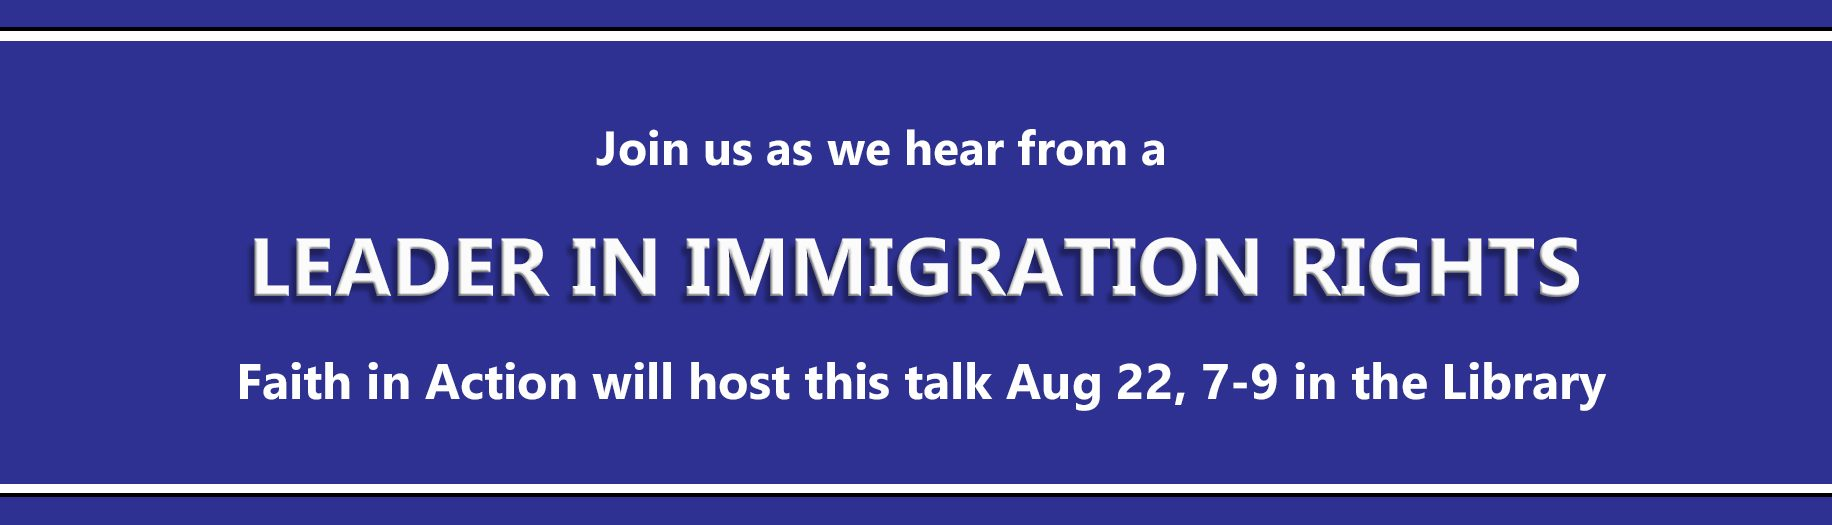 Immigration Rights Speaker